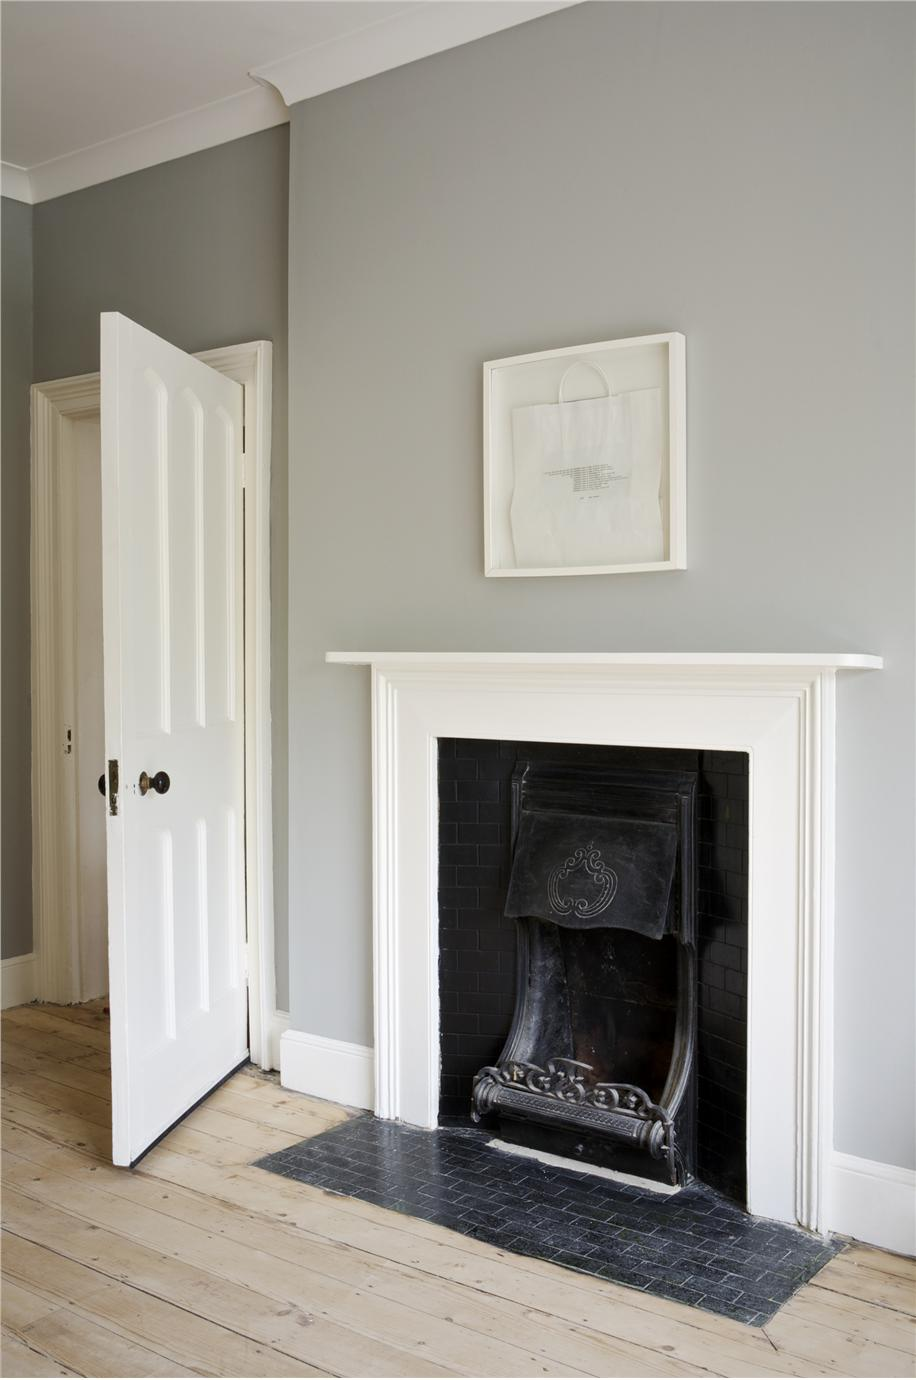 LAMP ROOM GRAY AND WIMBORNE WHITE.jpg